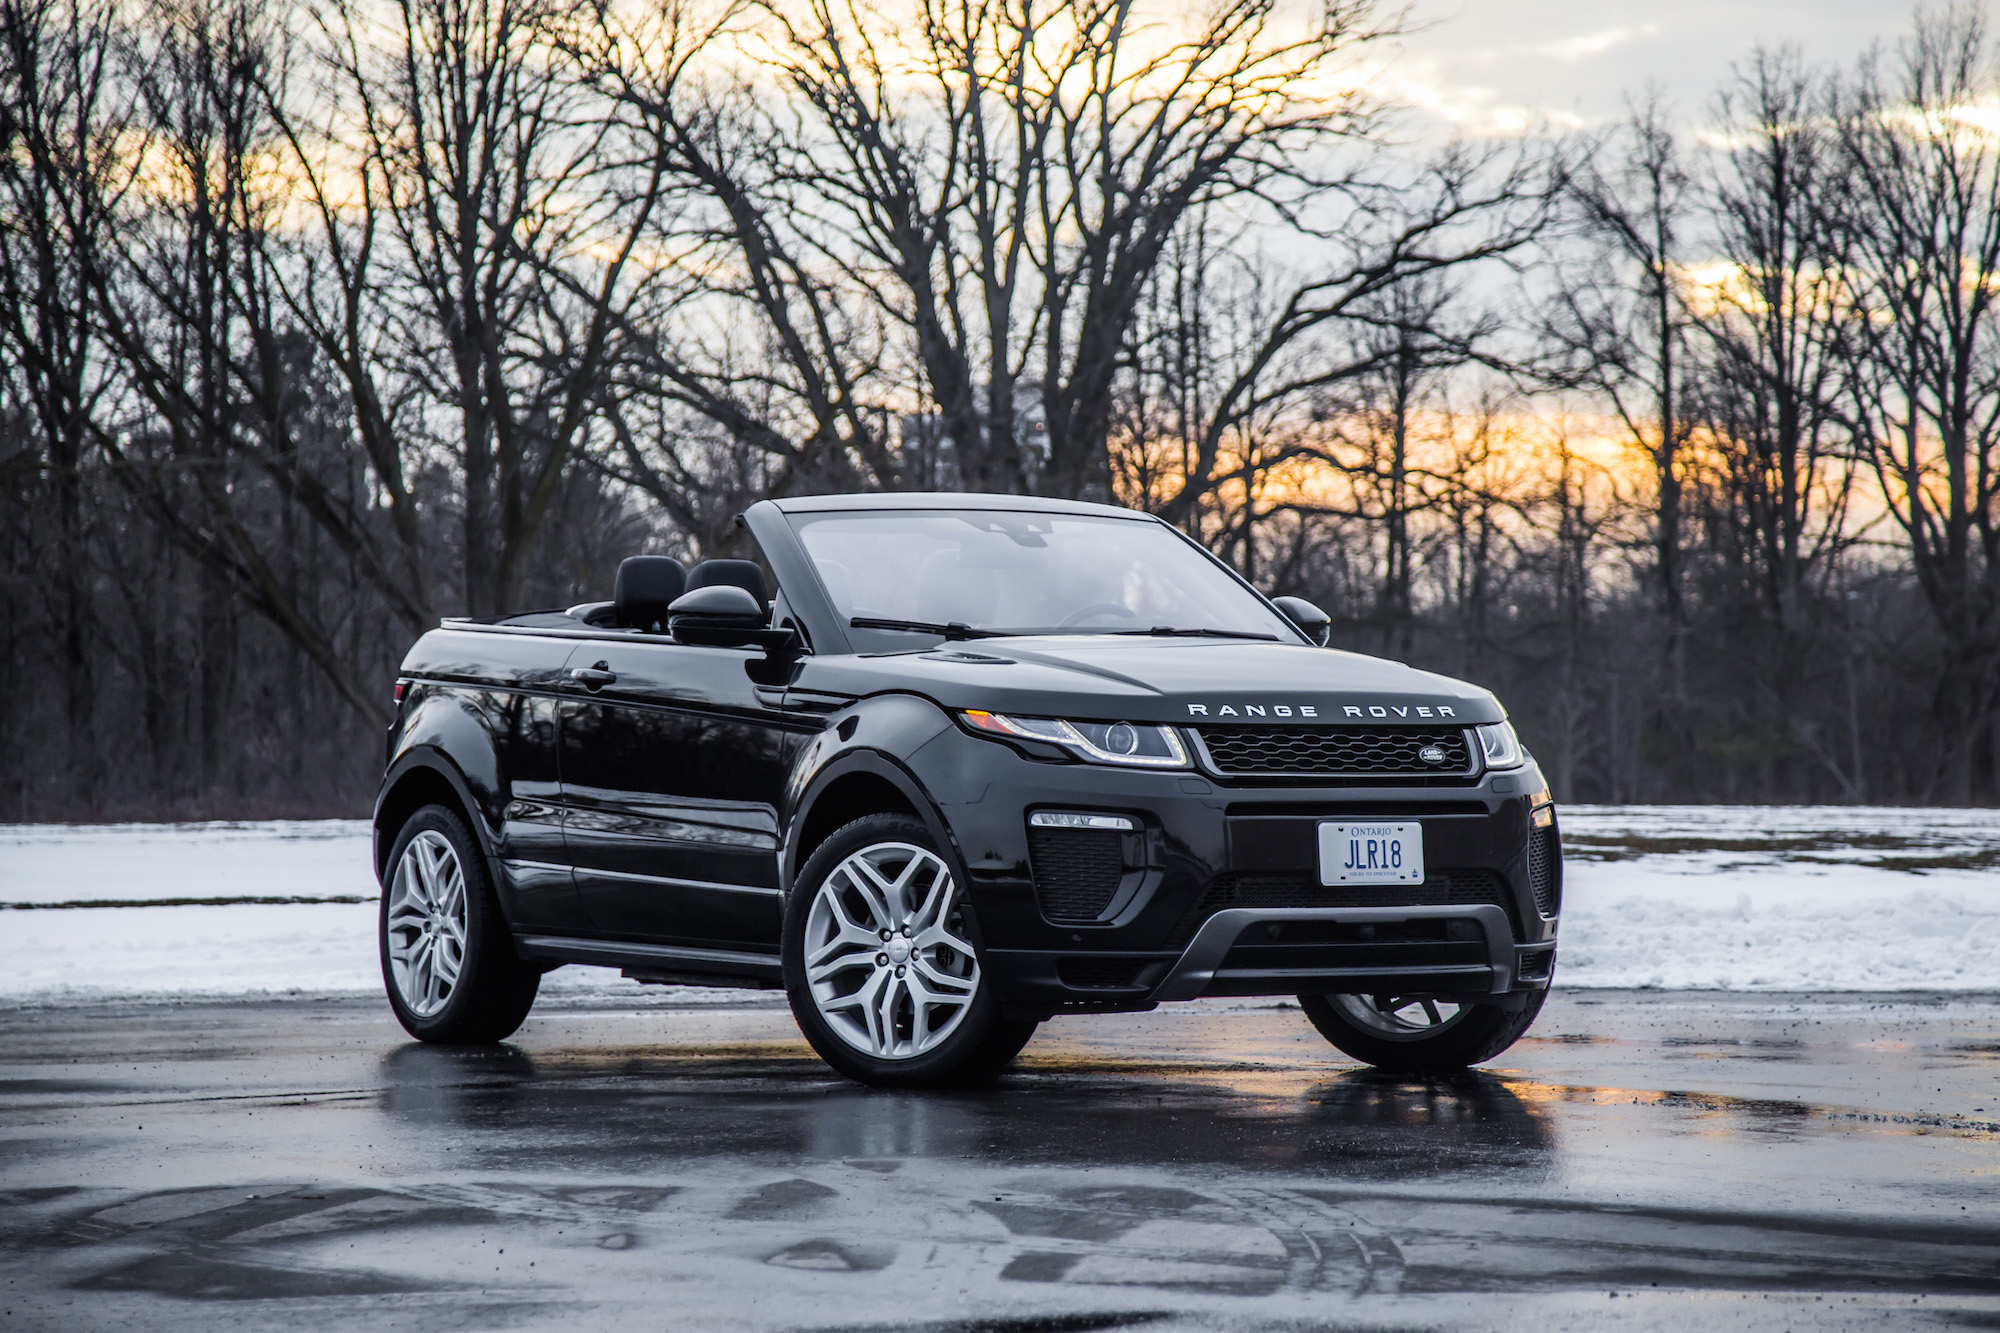 review 2017 range rover evoque convertible canadian auto review. Black Bedroom Furniture Sets. Home Design Ideas